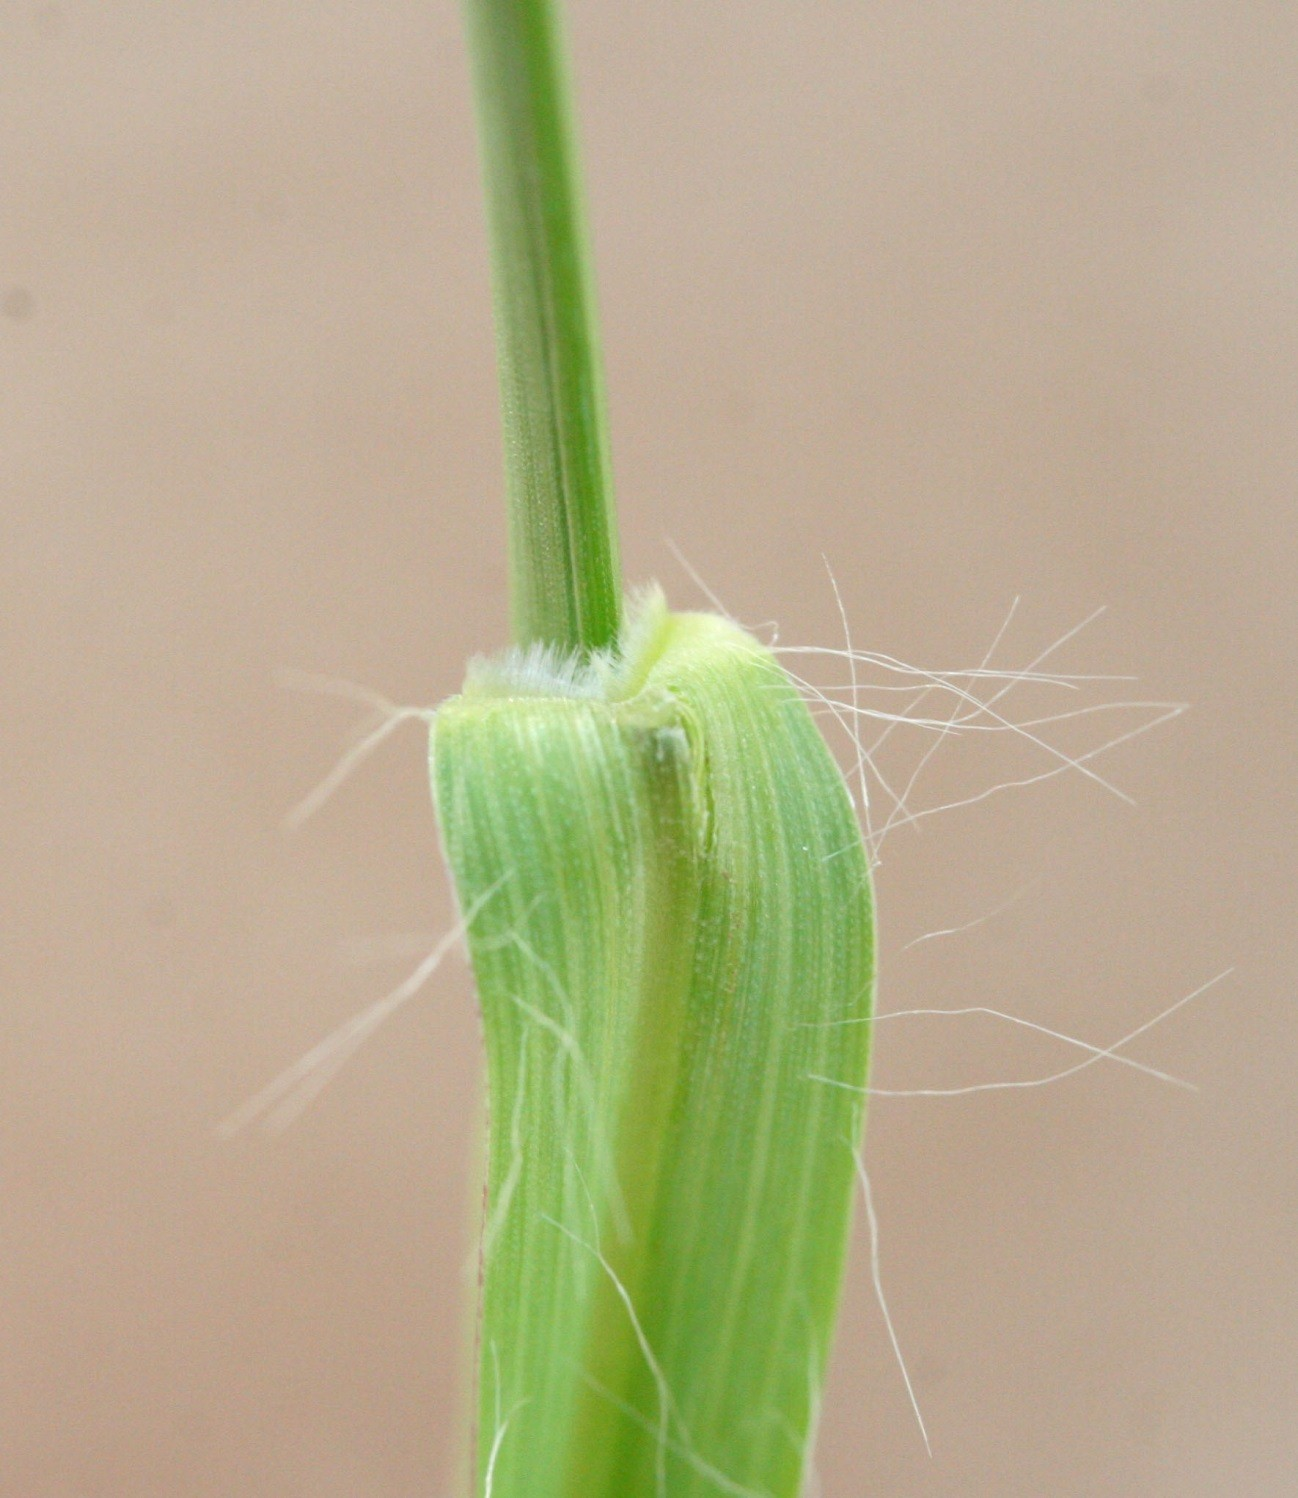 Figure 3. Yellow foxtail is easily distinguished from giant and green foxtail by the presence of long, cobweb-like hairs in the collar region.